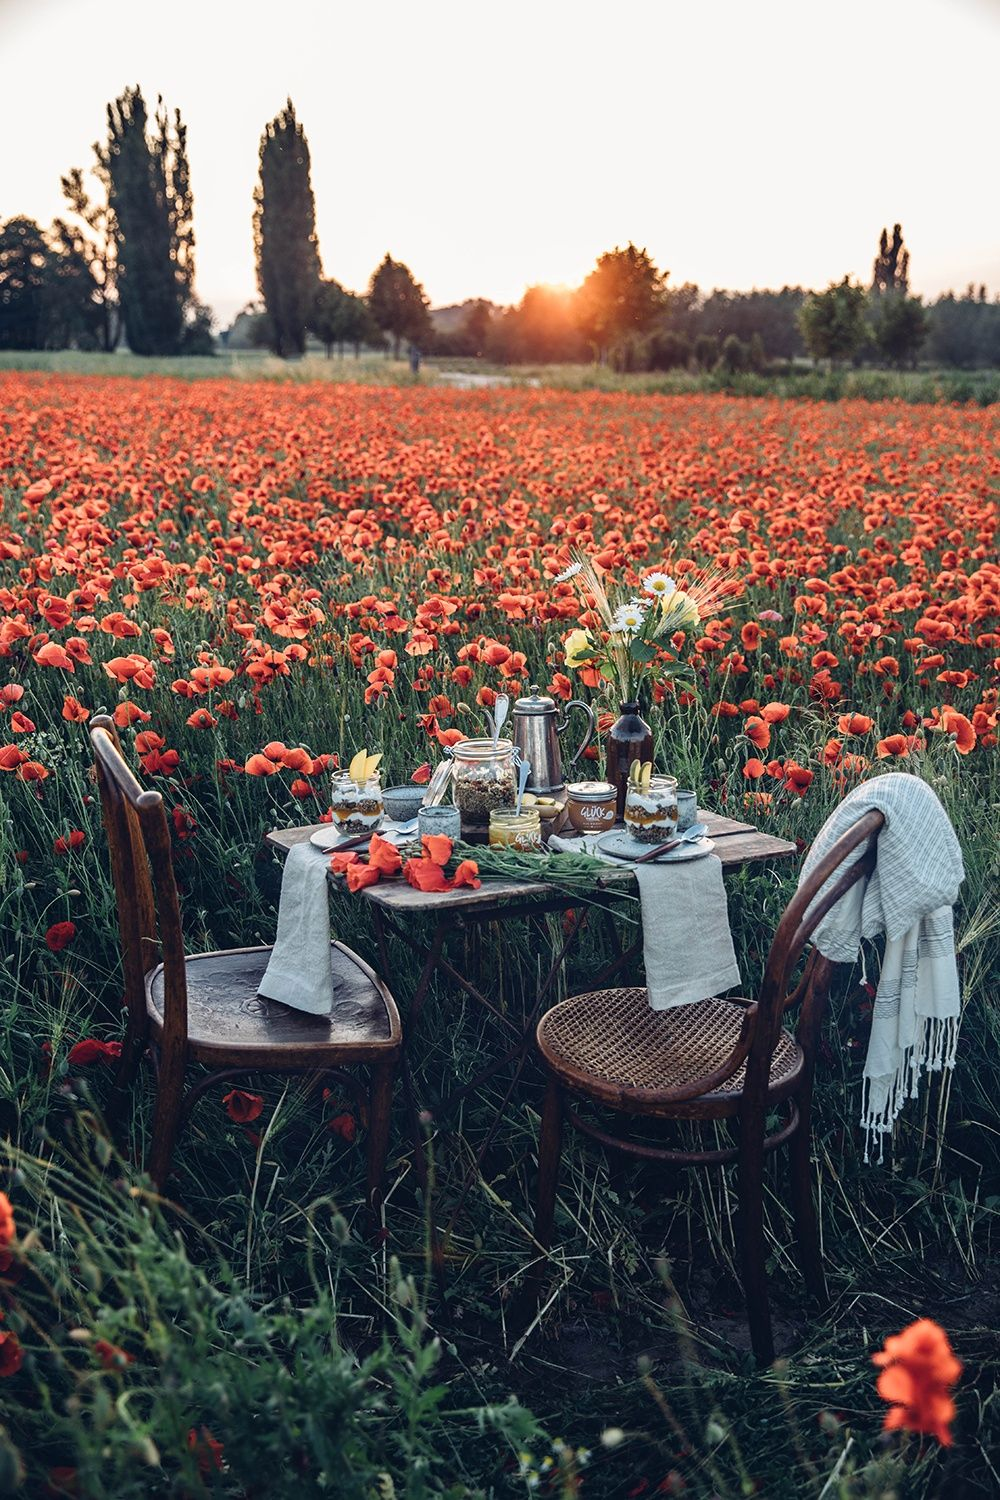 Photo of Gluten-free Poppyseed Granola – A Picnic in a field of poppies